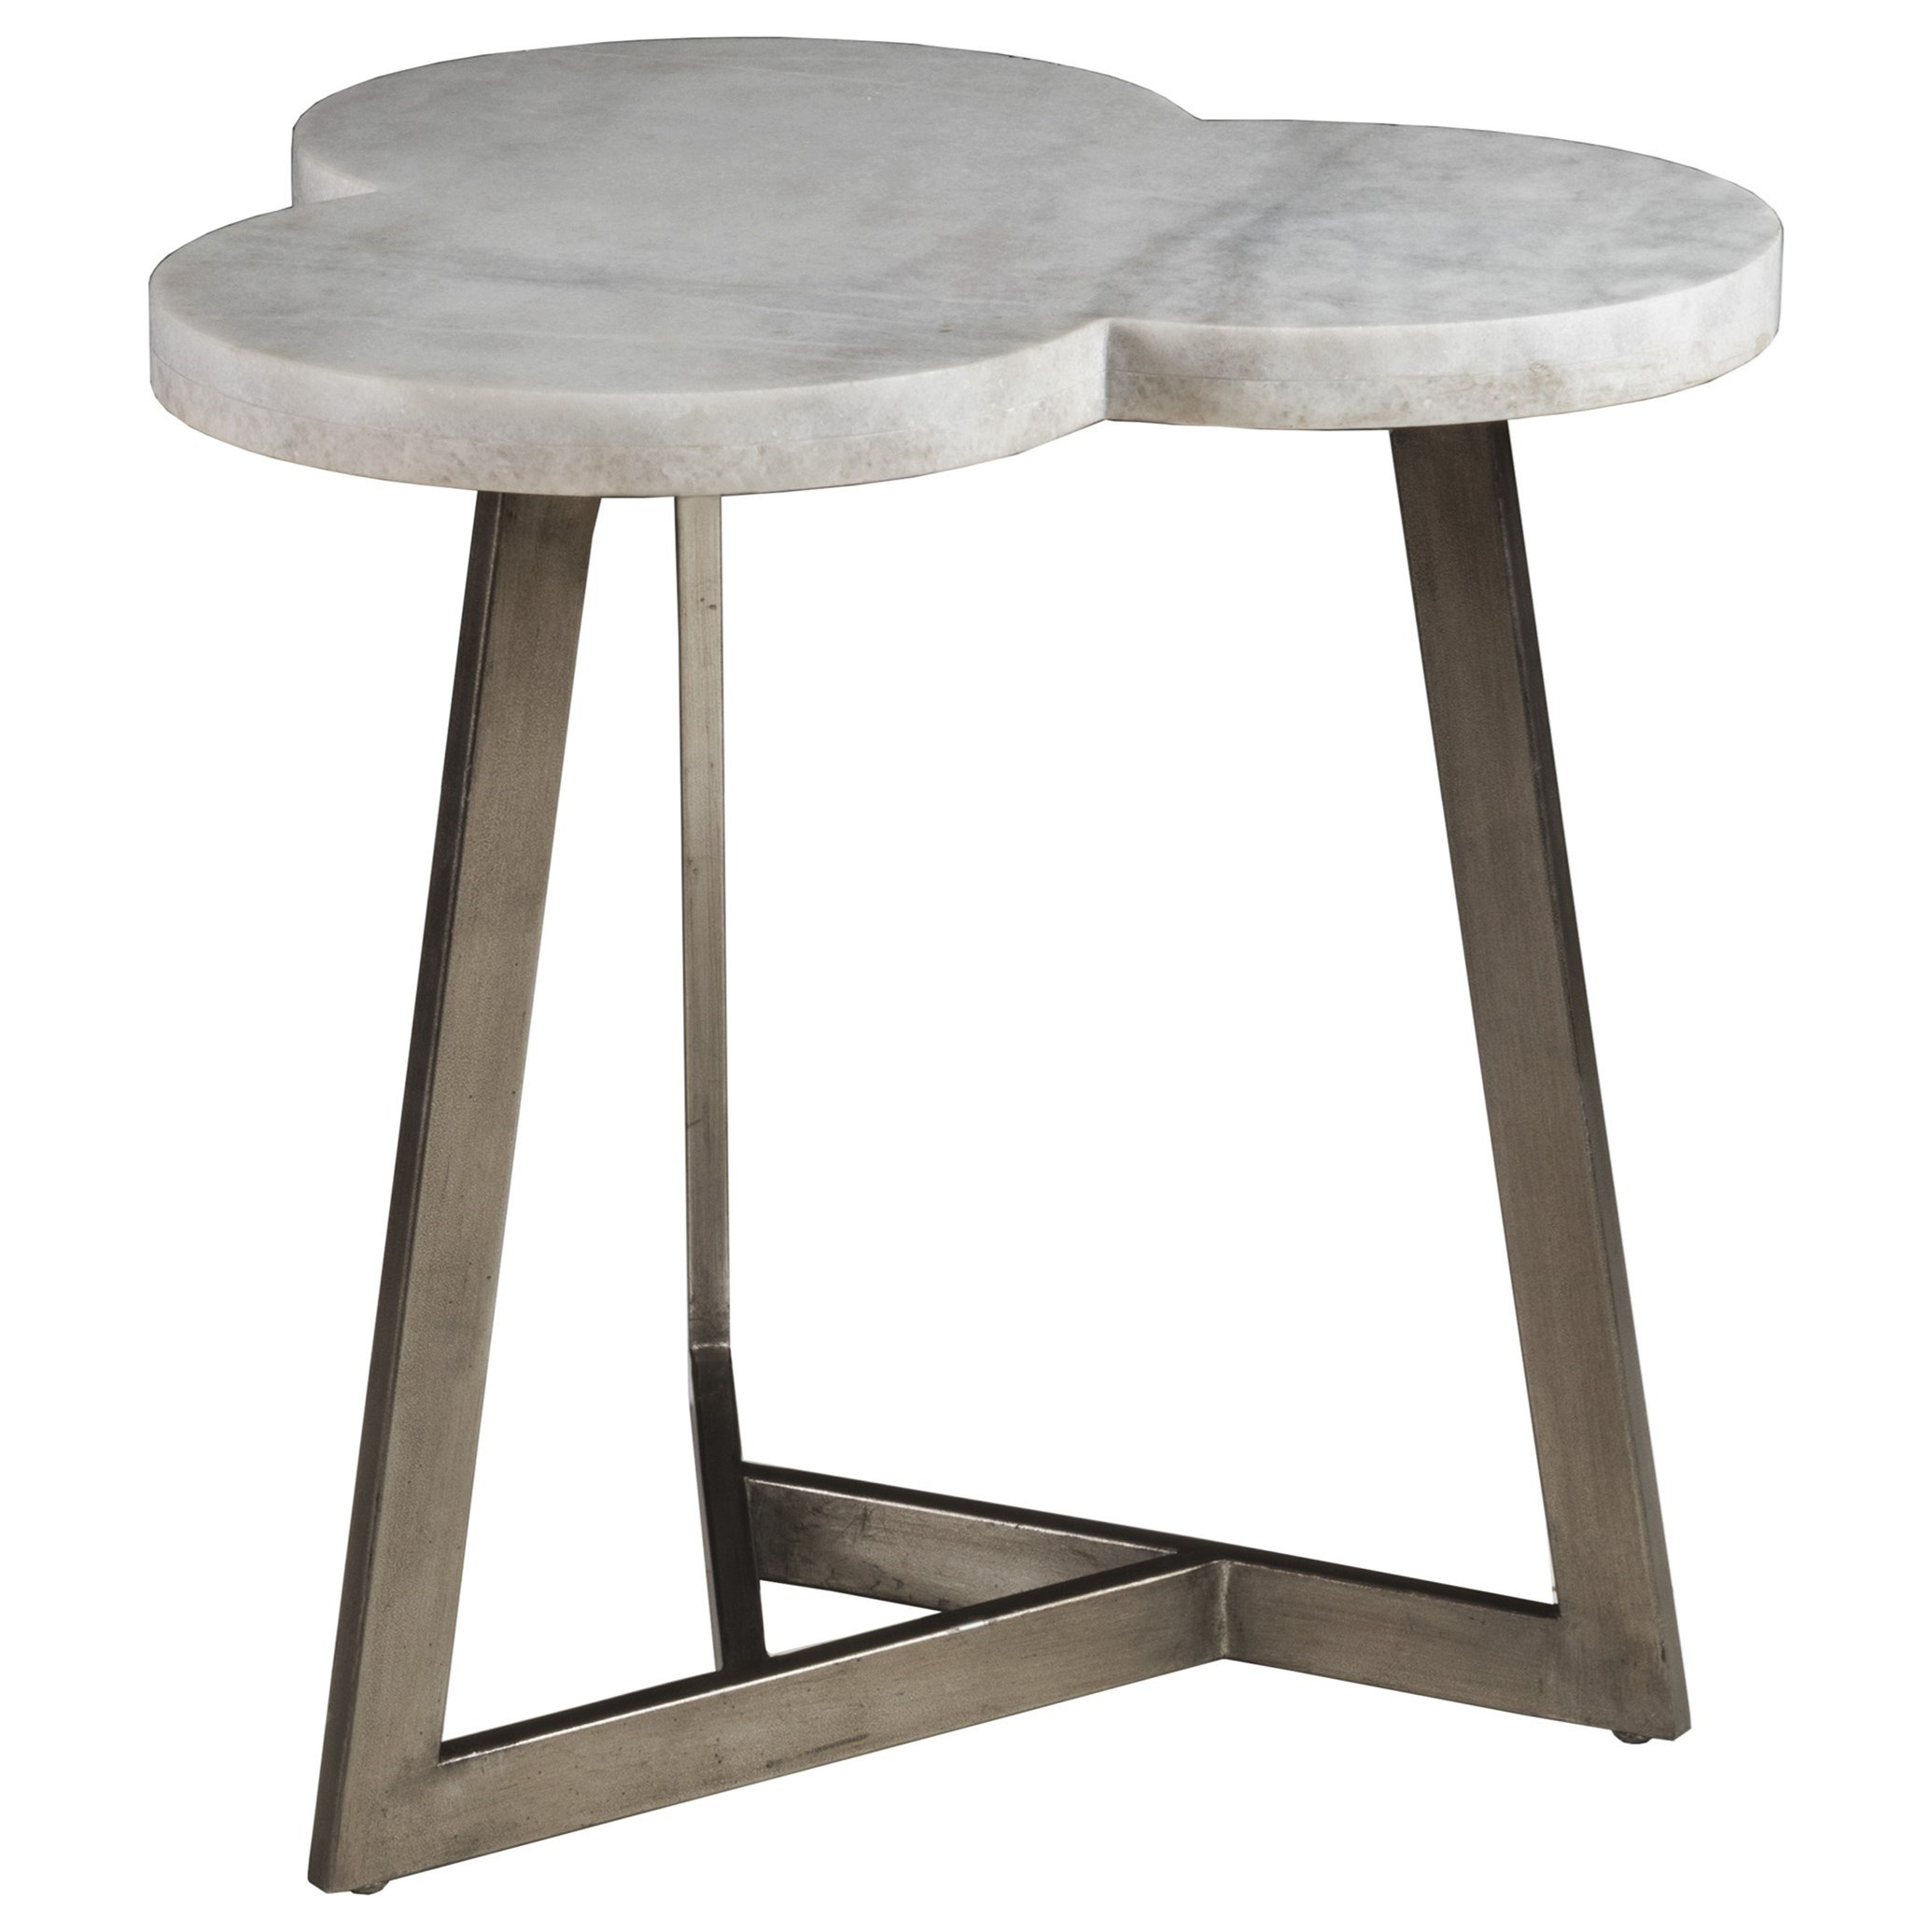 Artisto Clover End Table by Artistica at Baer's Furniture